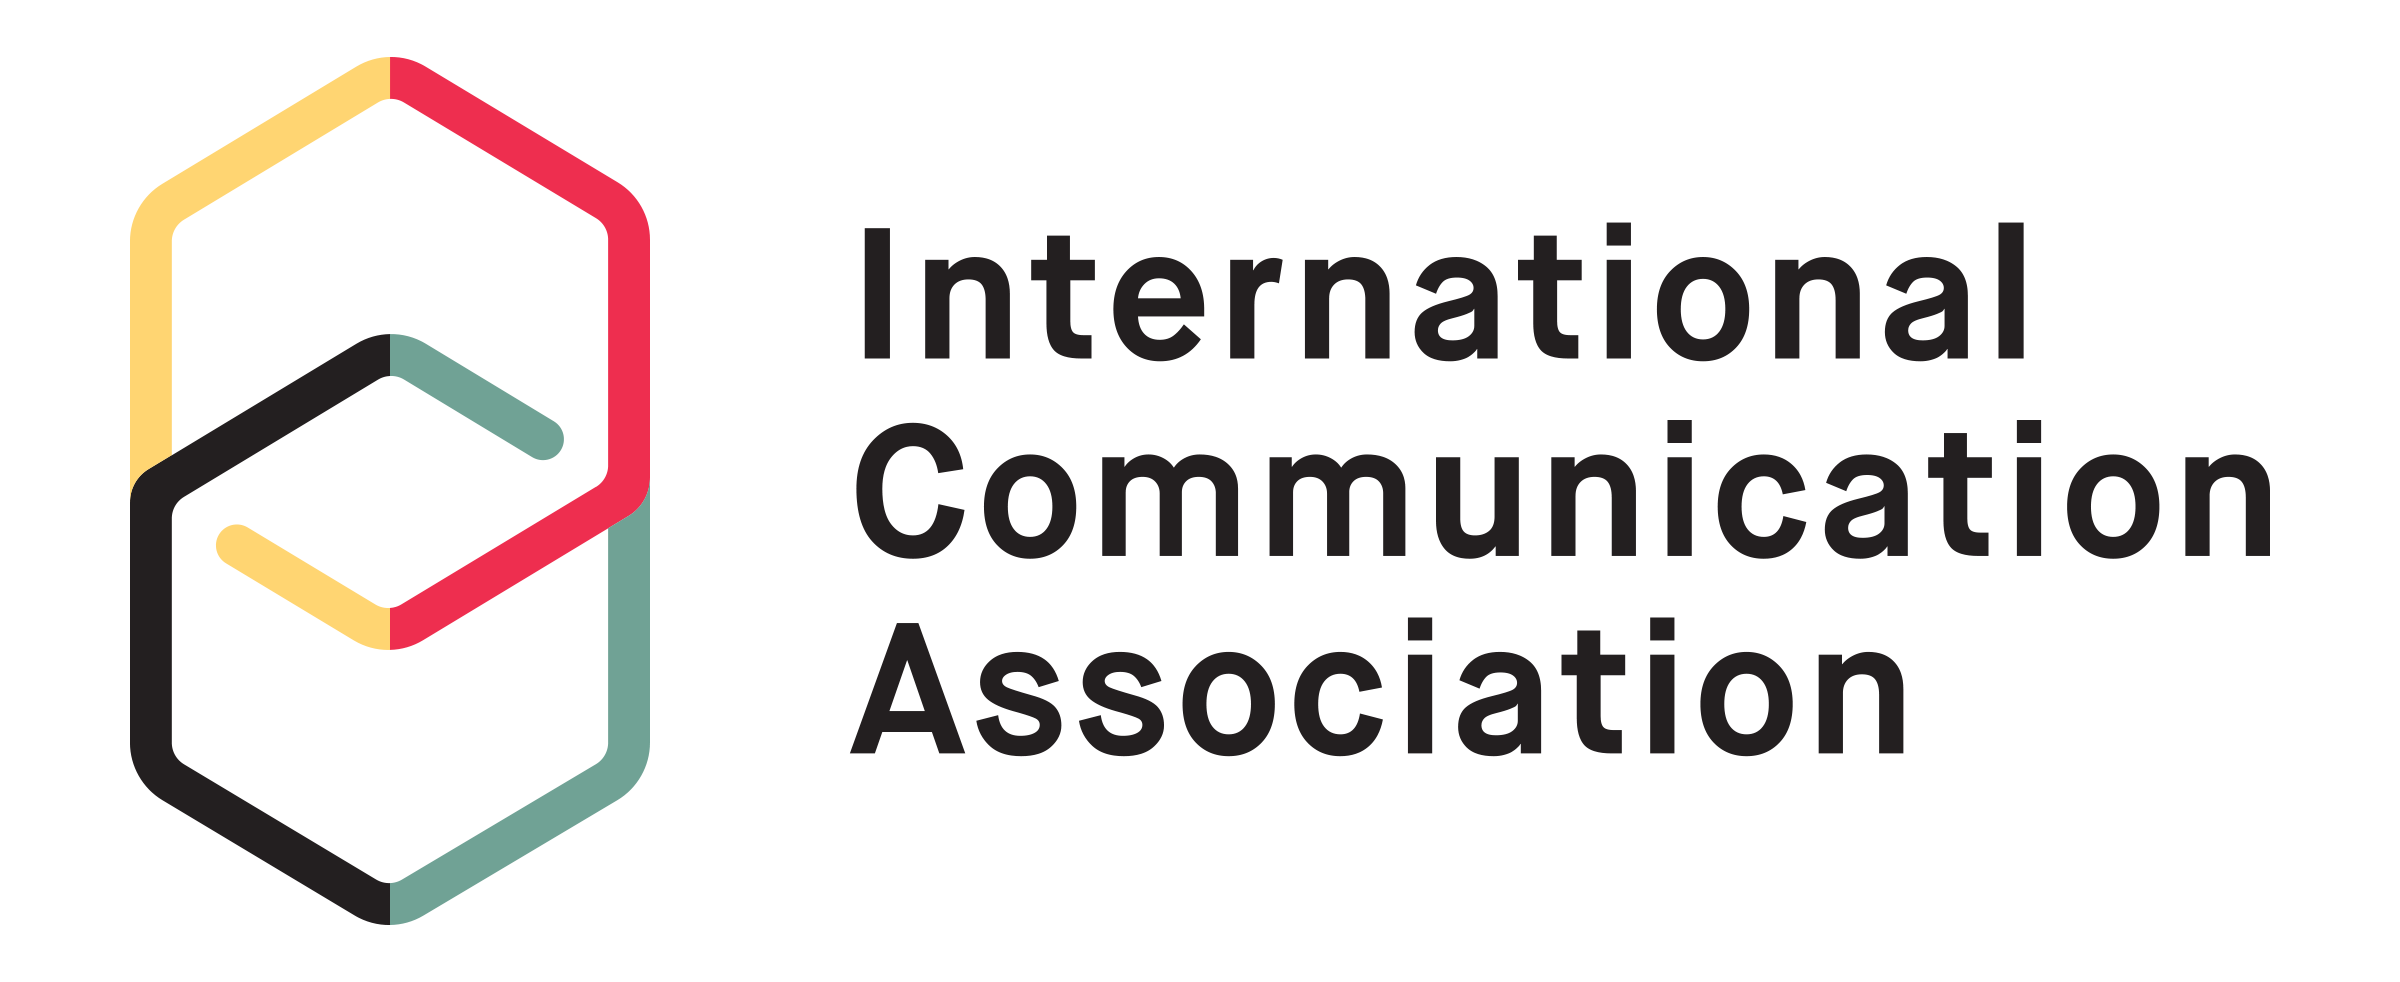 ica_full_wordmark